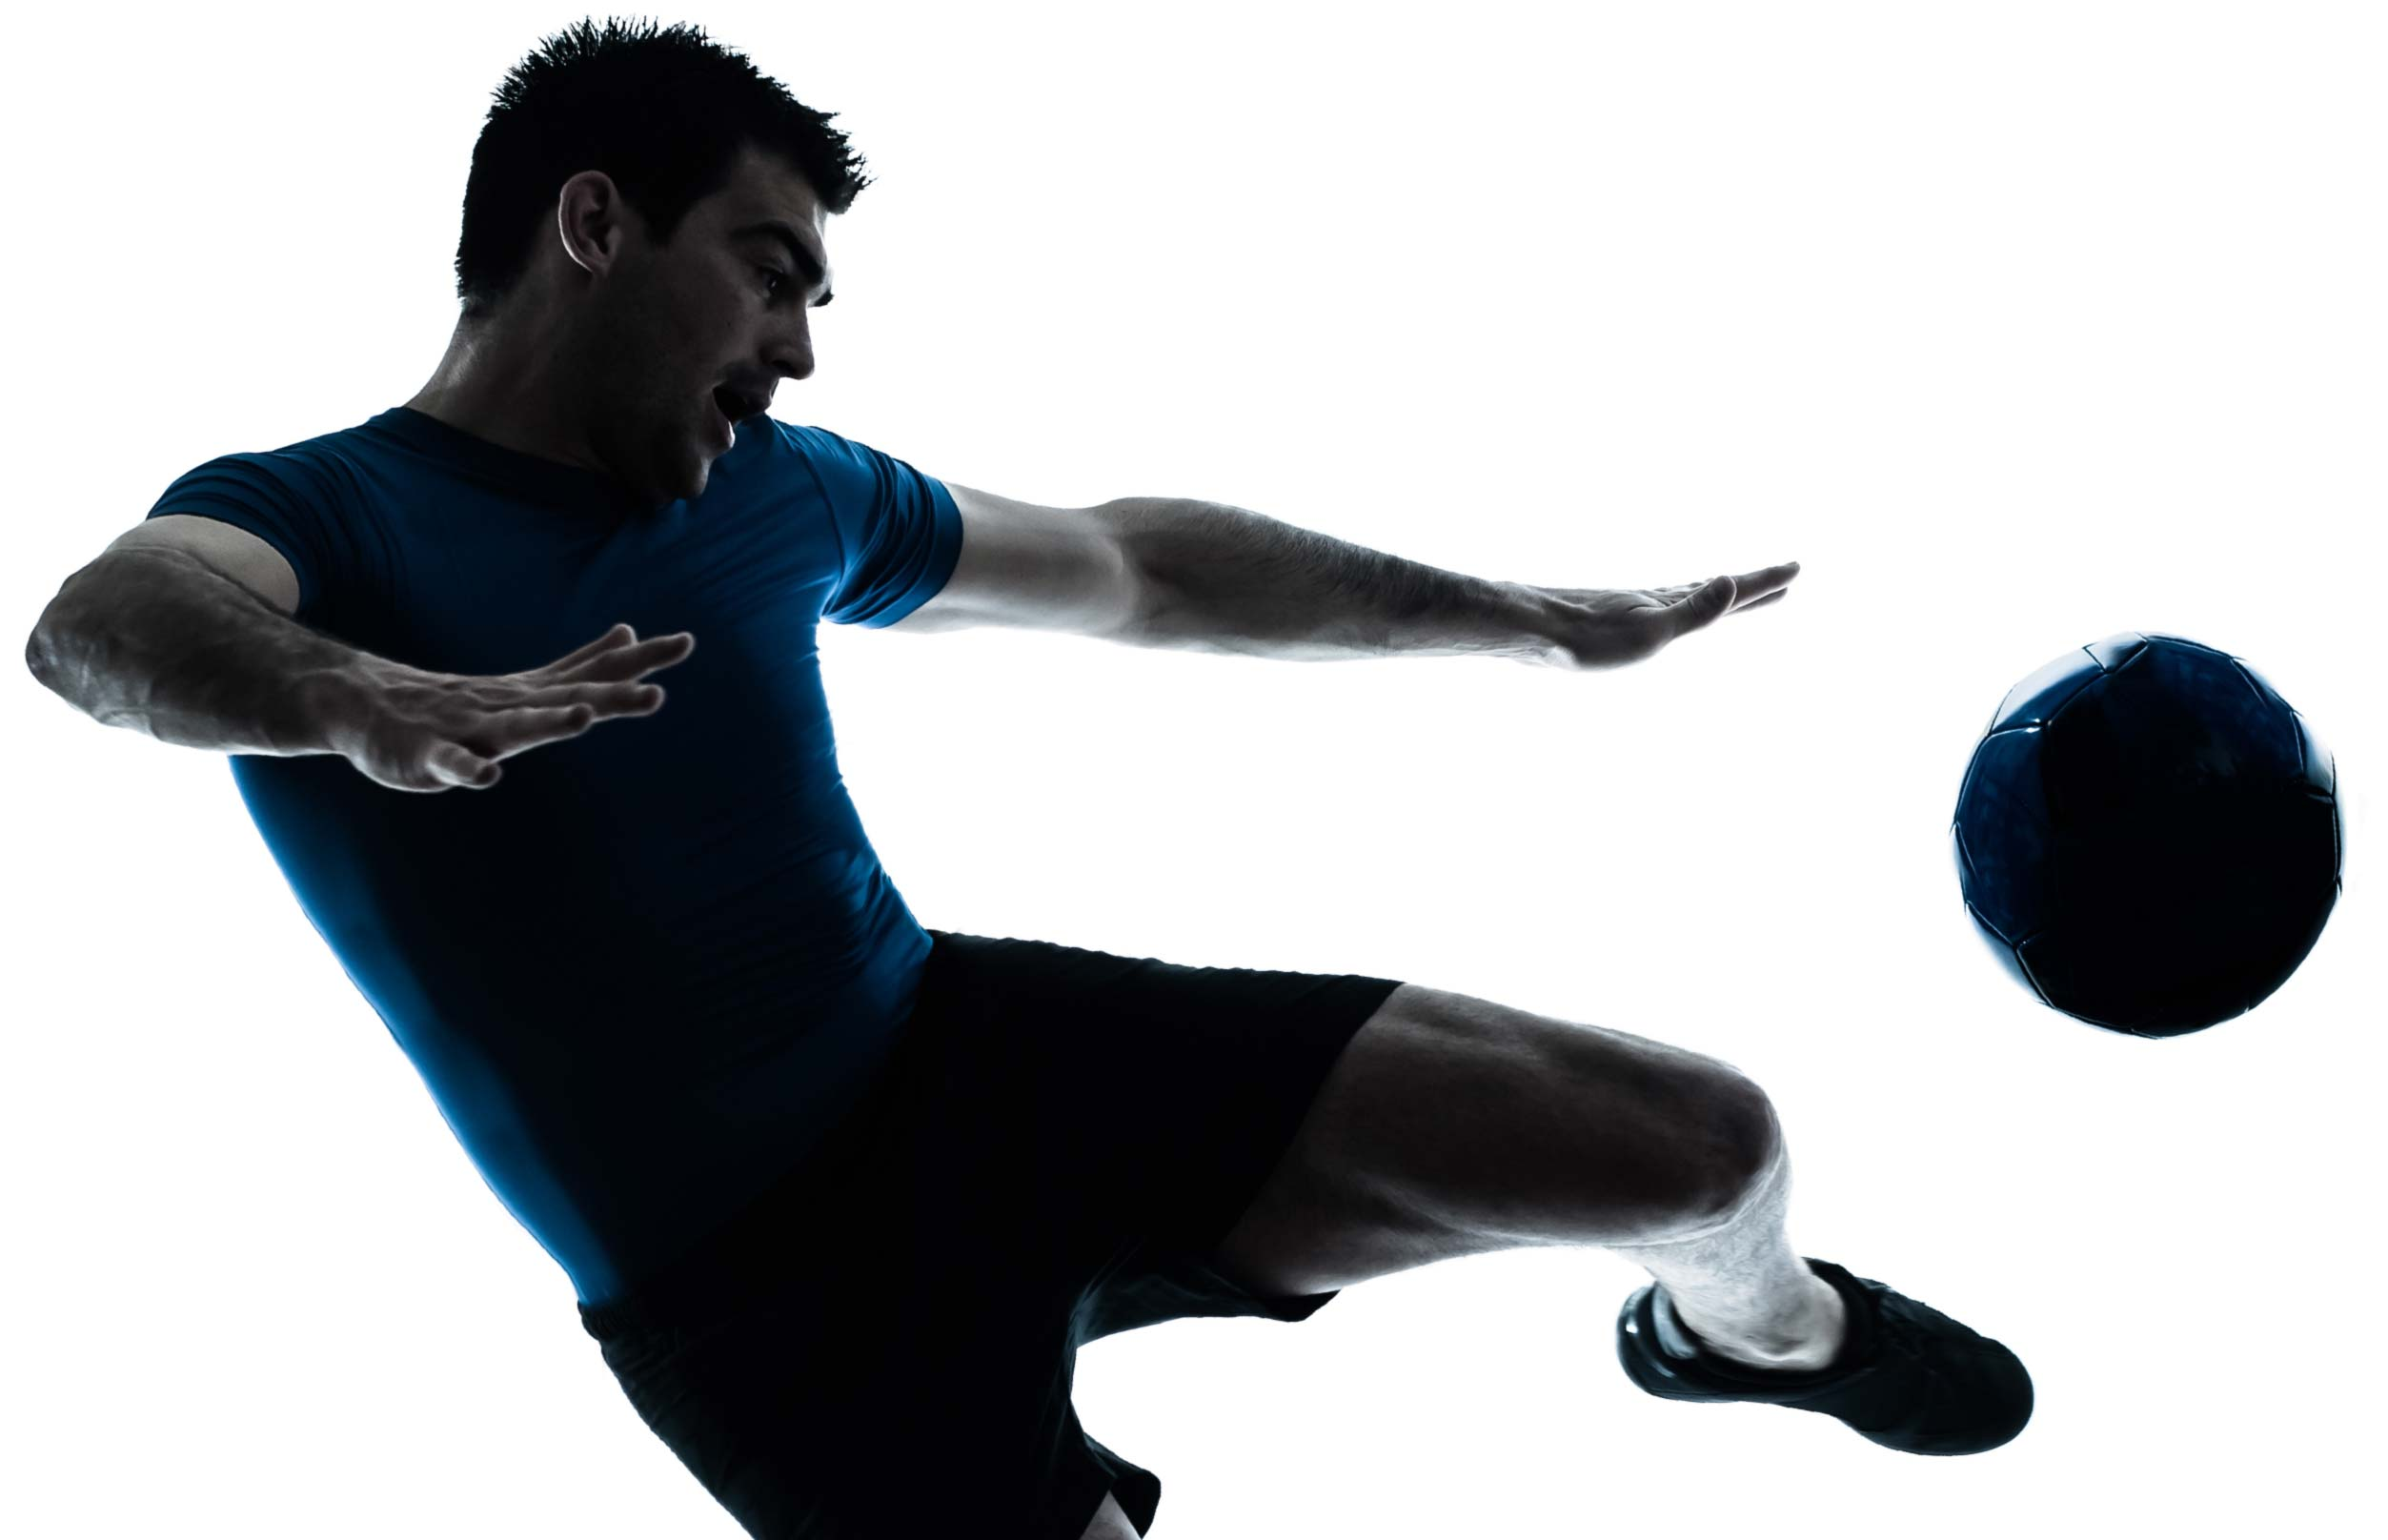 physiotherapy solutions - image of healthy man kicking ball